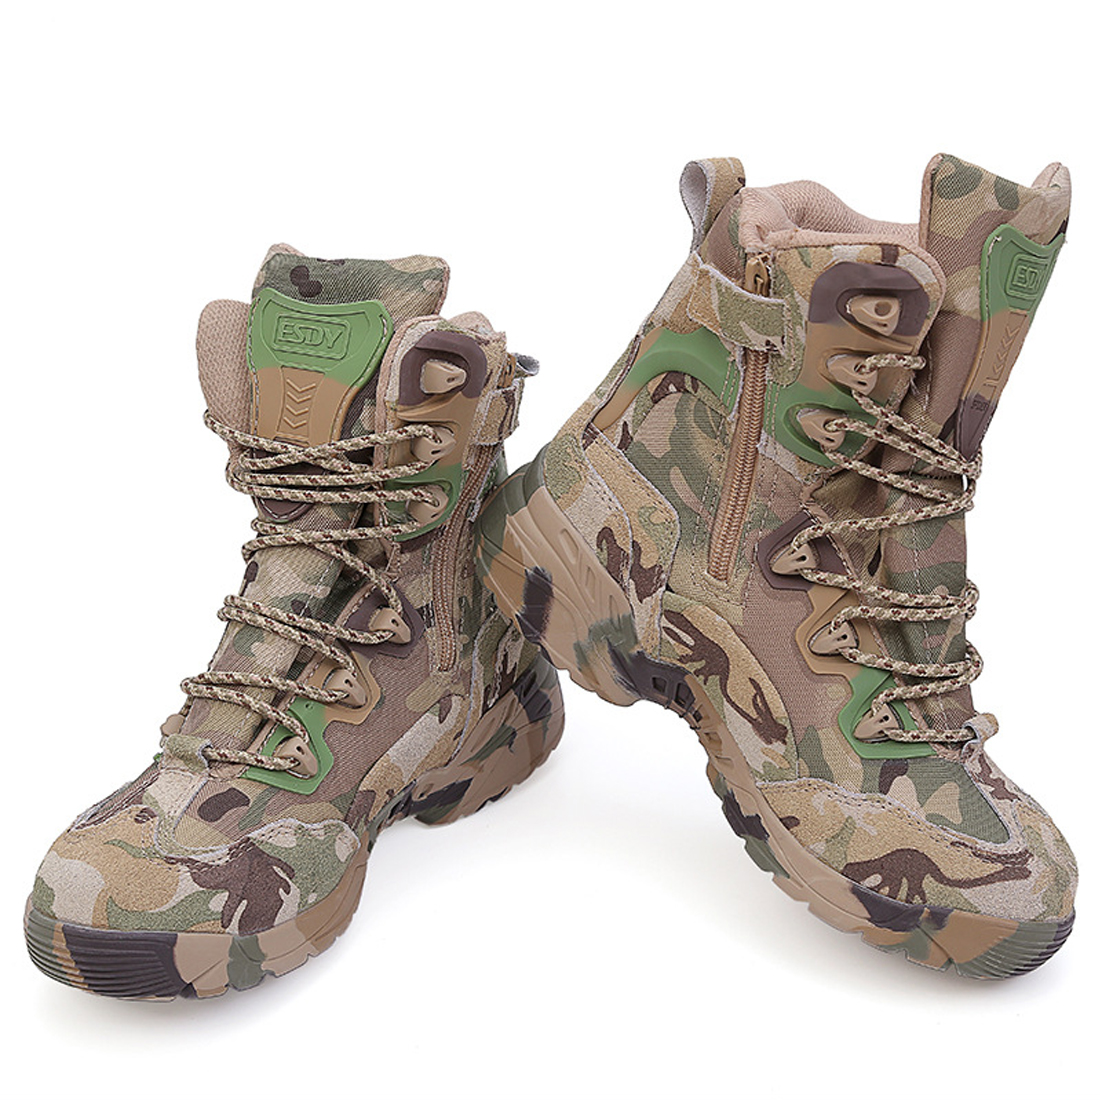 breathable Men's Desert Camouflage Military Tactical Boots Men Combat Army Boots Botas Militares Sapatos Masculino